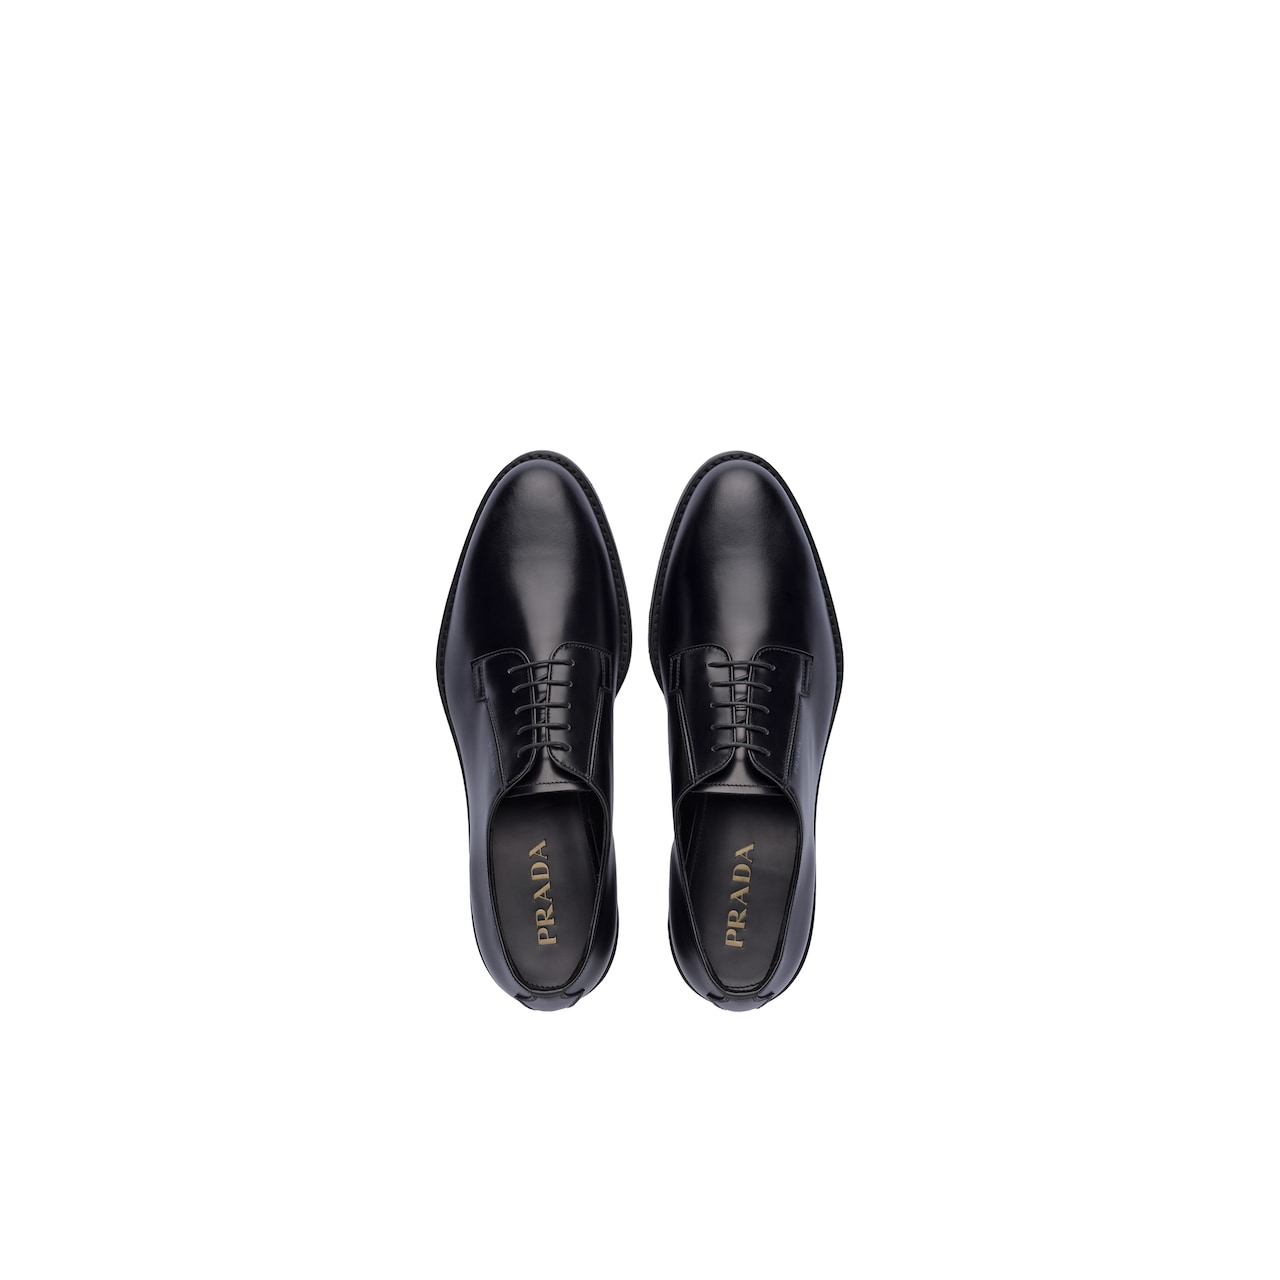 Prada Brushed leather derby shoes 5